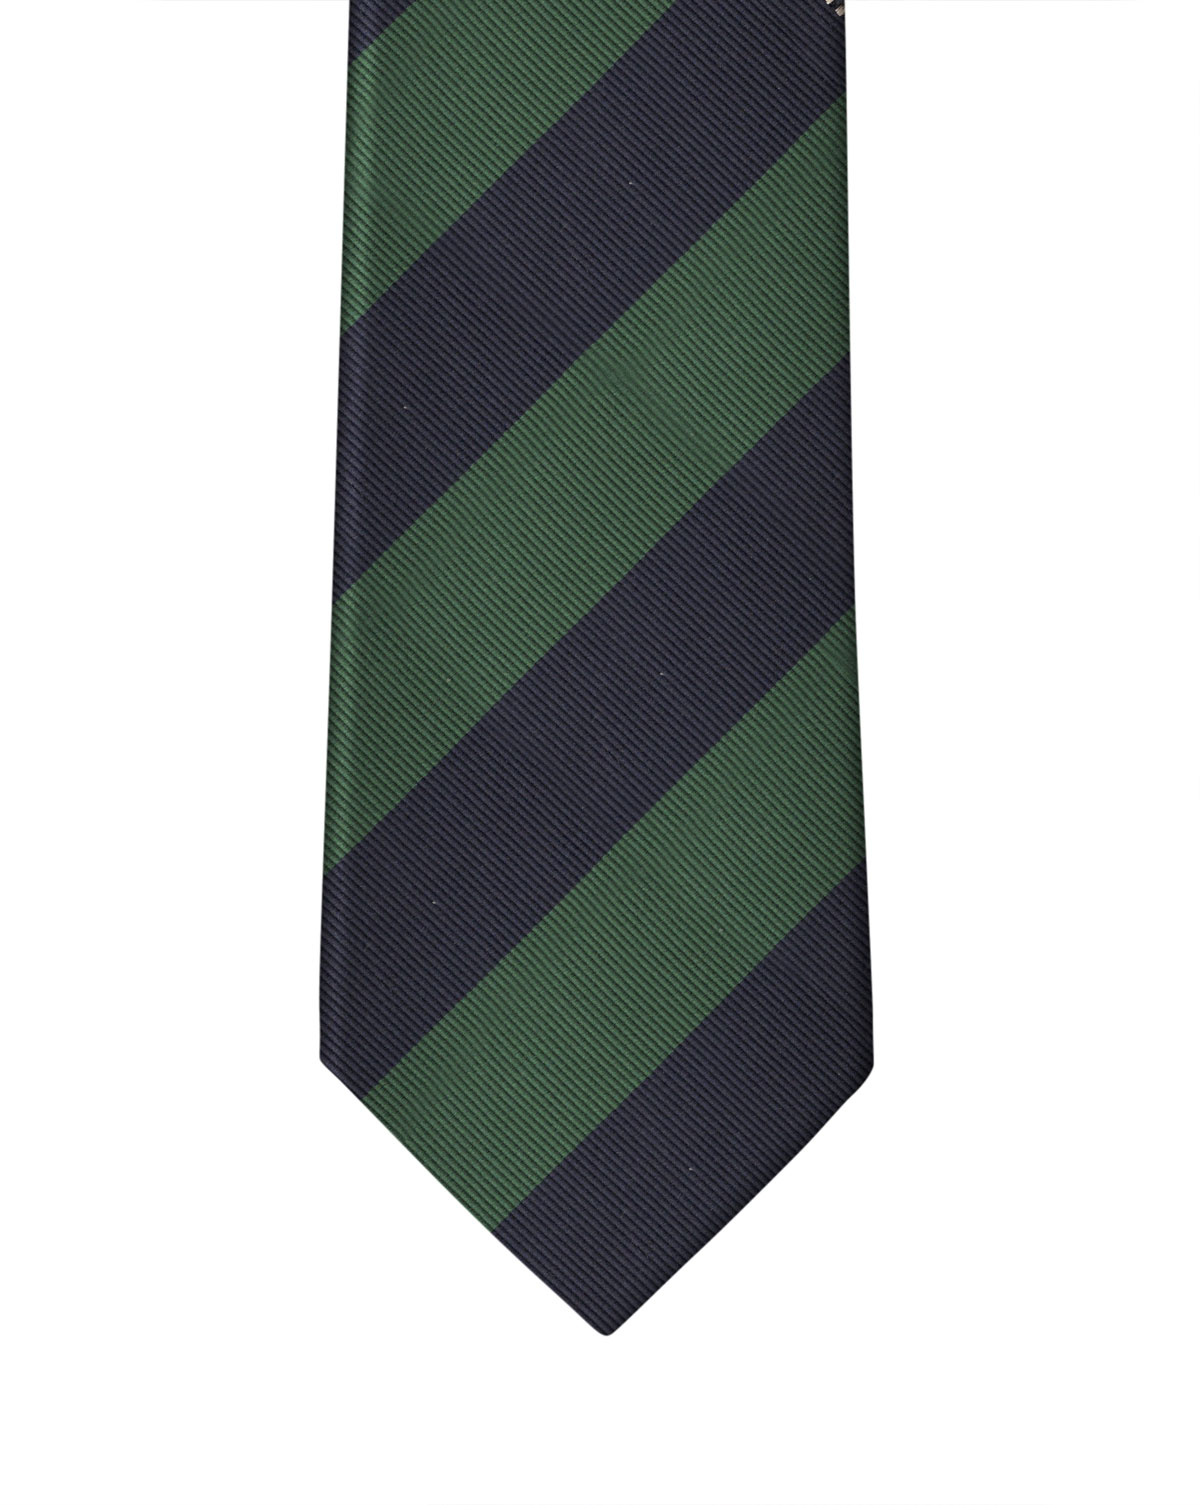 Navy & Green Two Color Rep Stripe Necktie